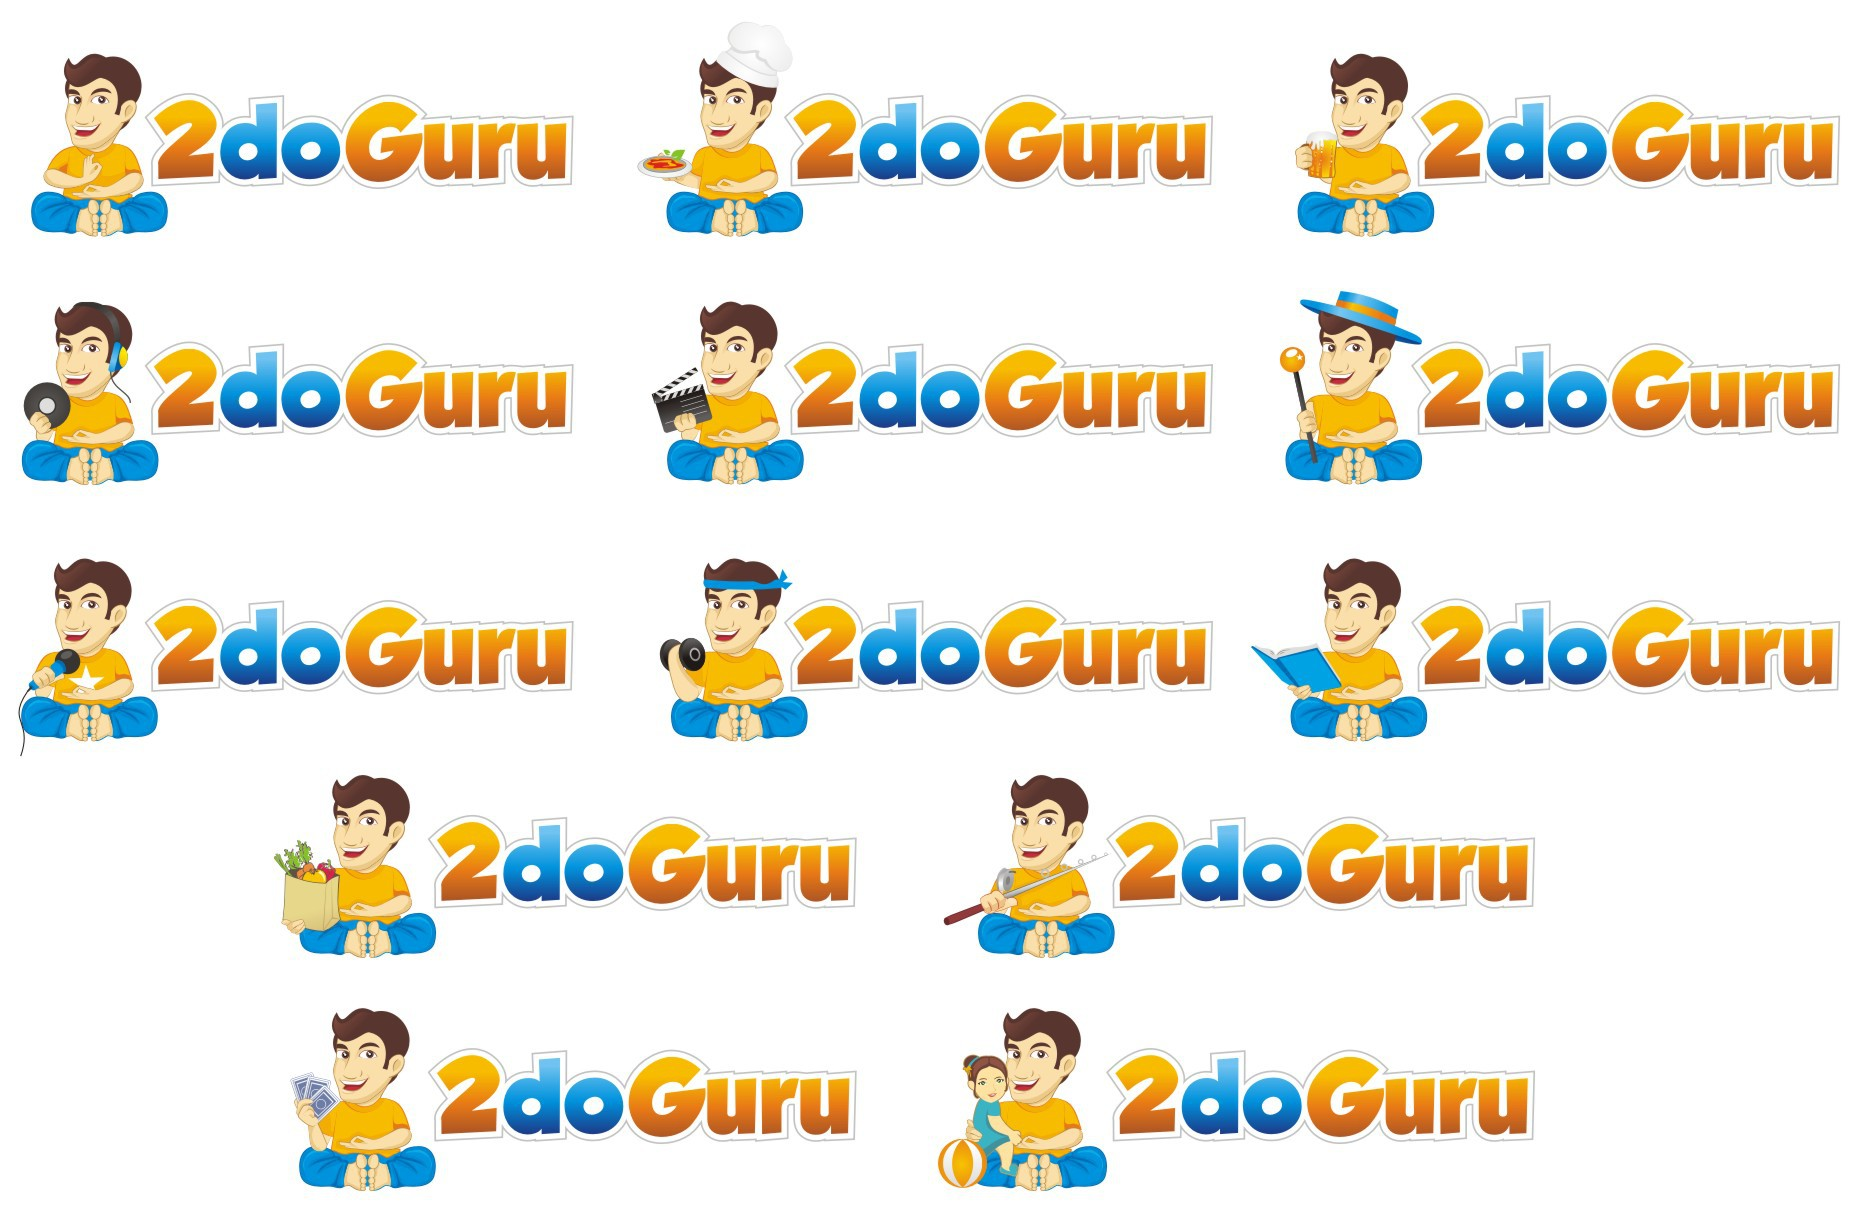 Help 2do Guru with a new logo